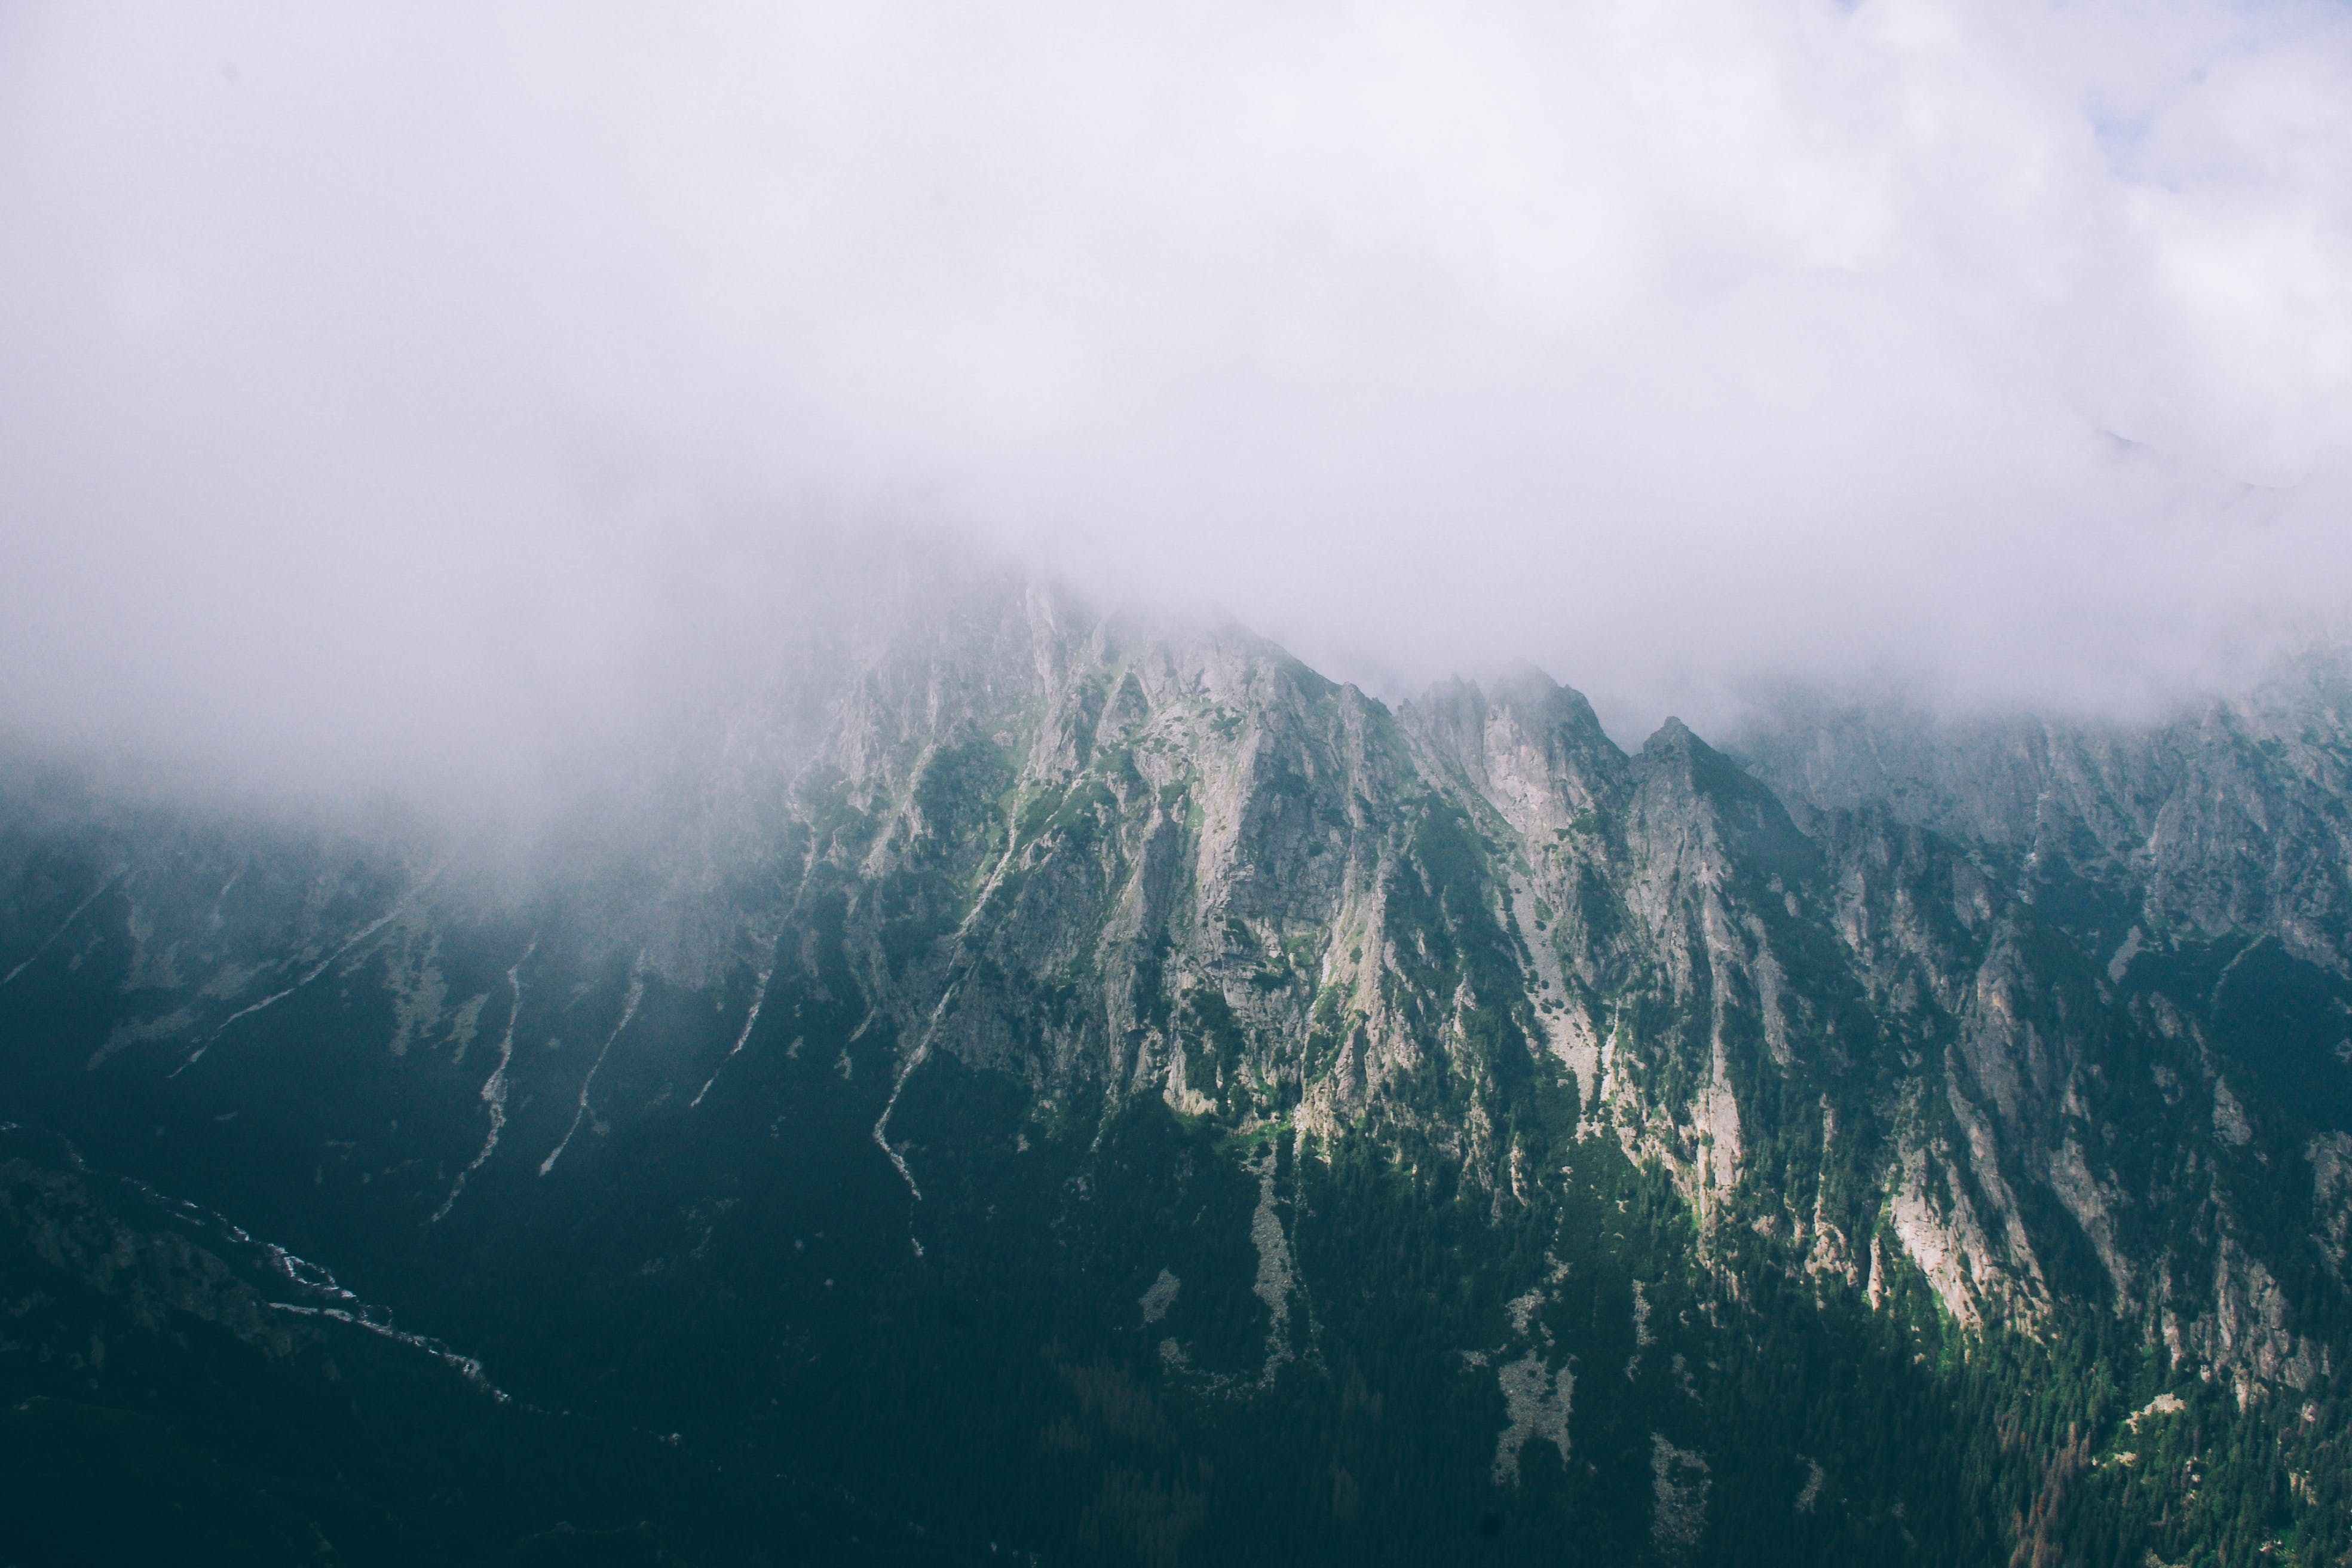 Bird's-eye View of Mountain Covered With Clouds